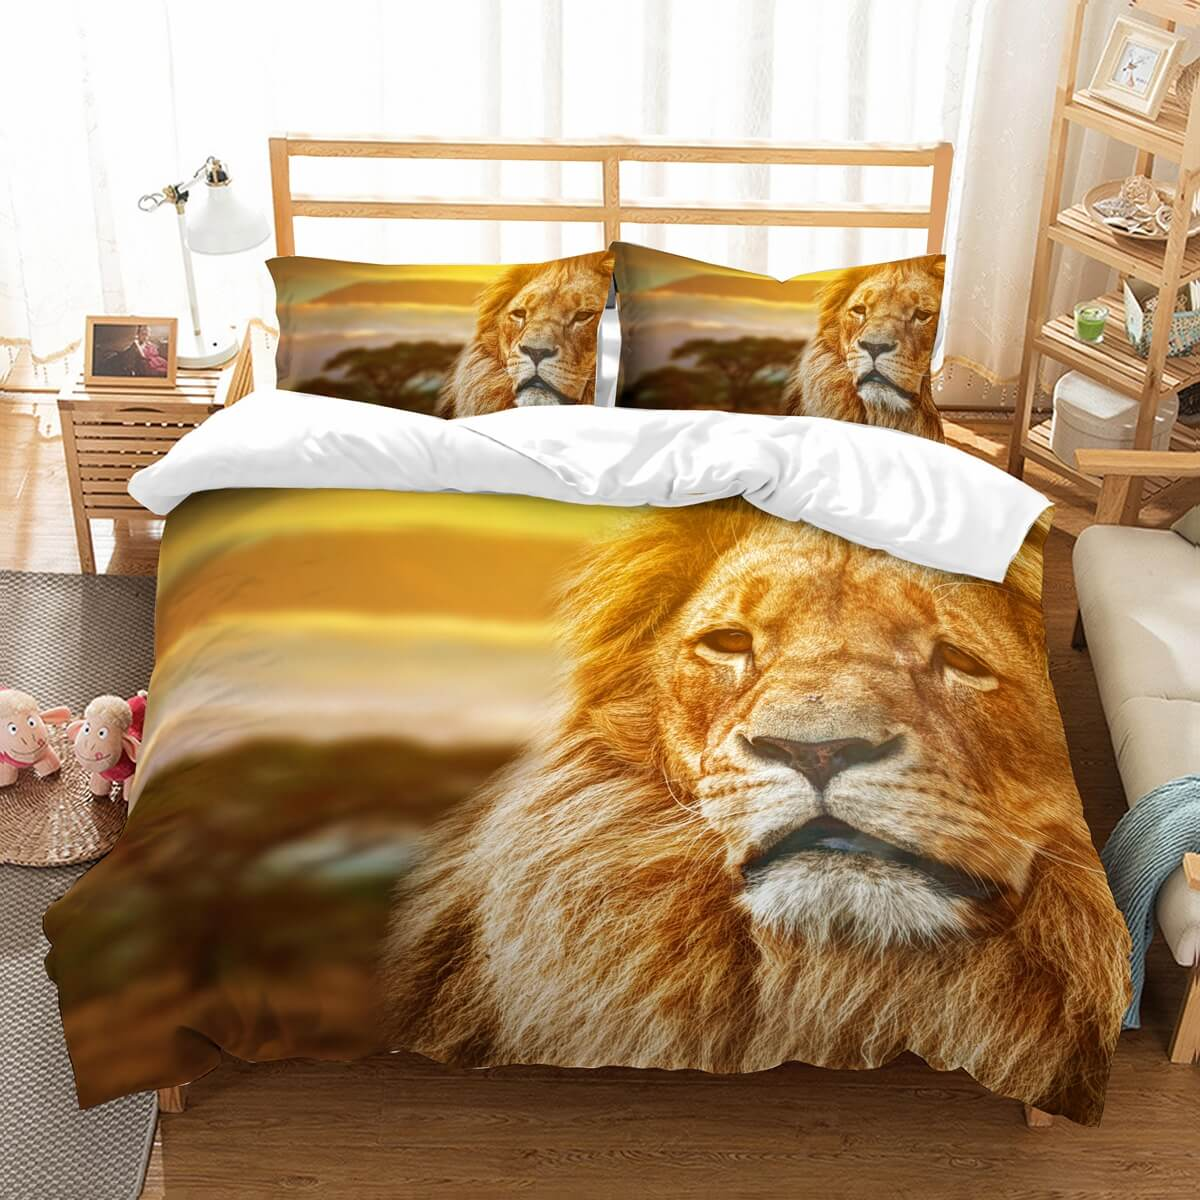 3D Customize Lion Bedding Set Duvet Cover Set Bedroom Set Bedlinen